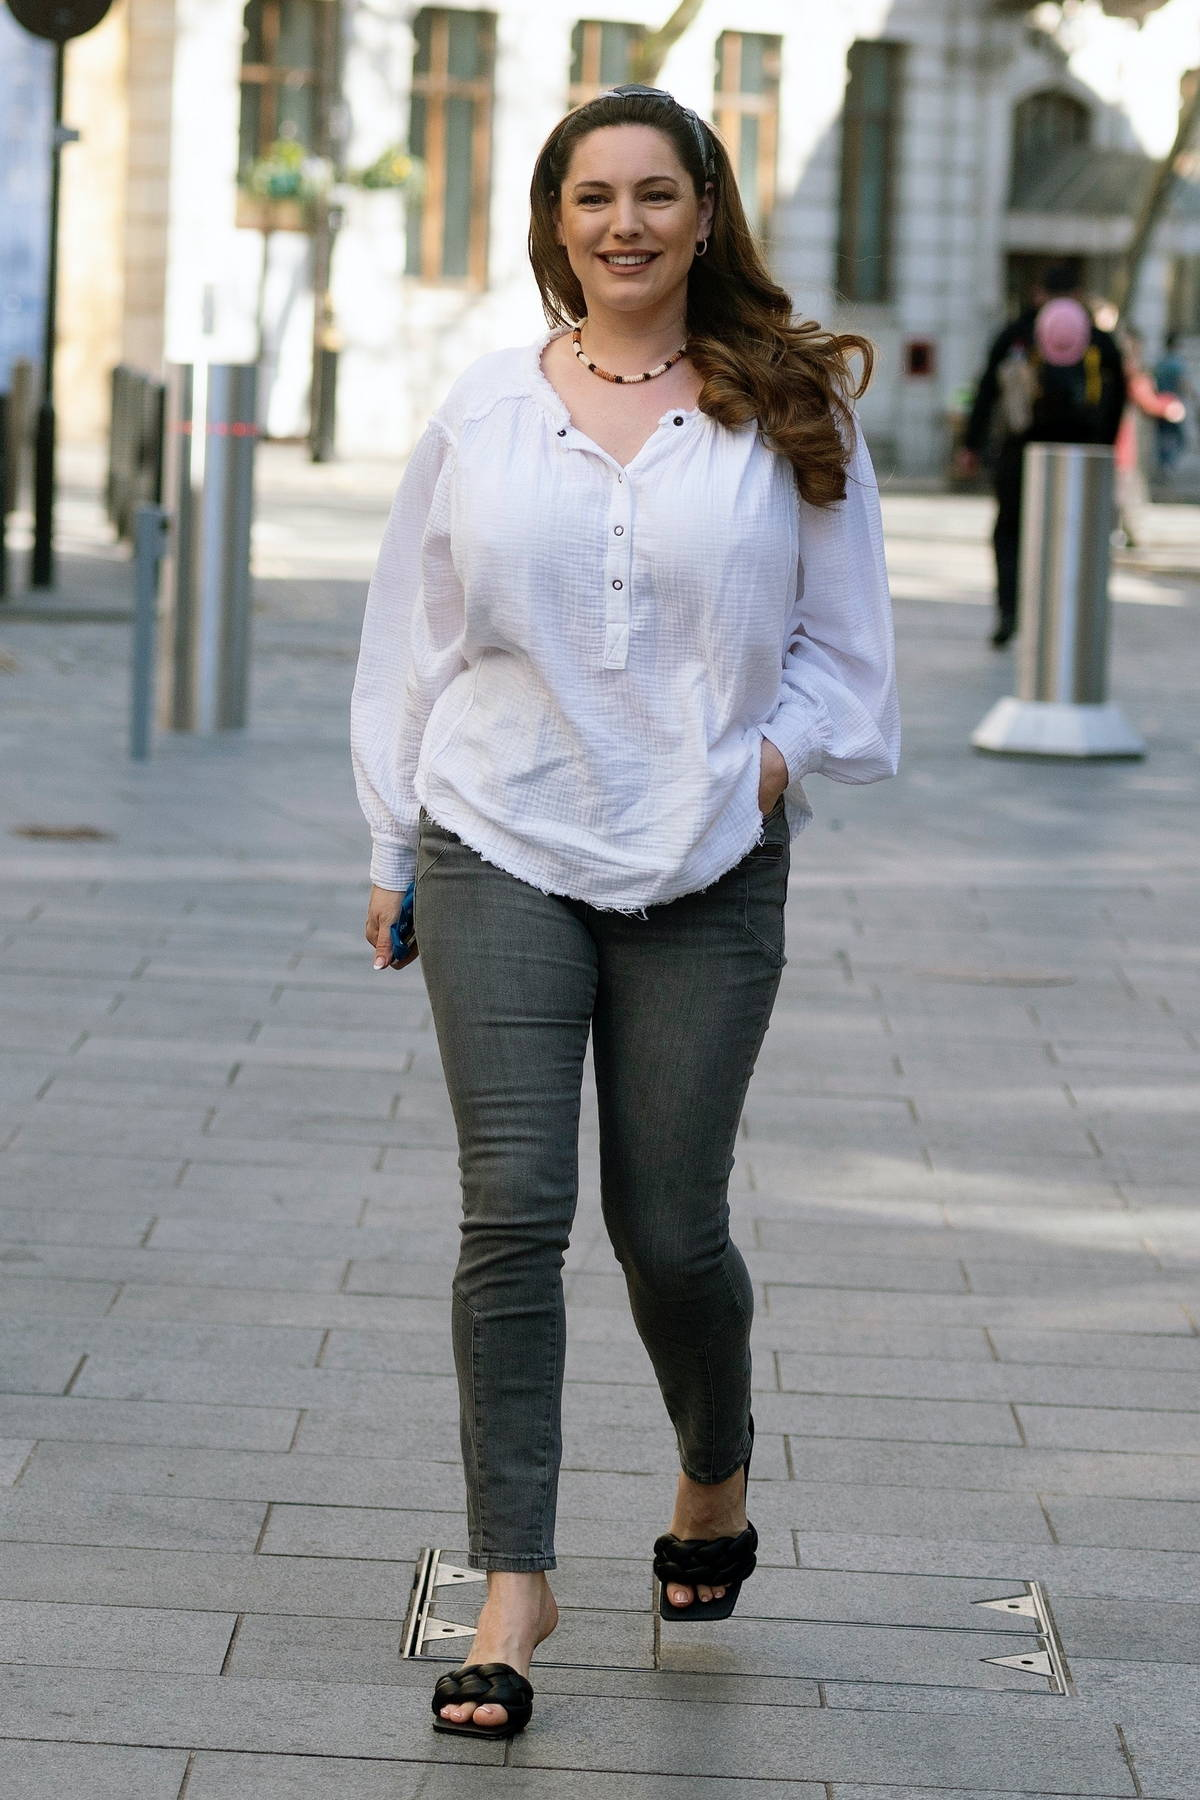 Kelly Brook looks summer ready in a white blouse and skinny jeans while arriving at the Global Radio studios in London, UK